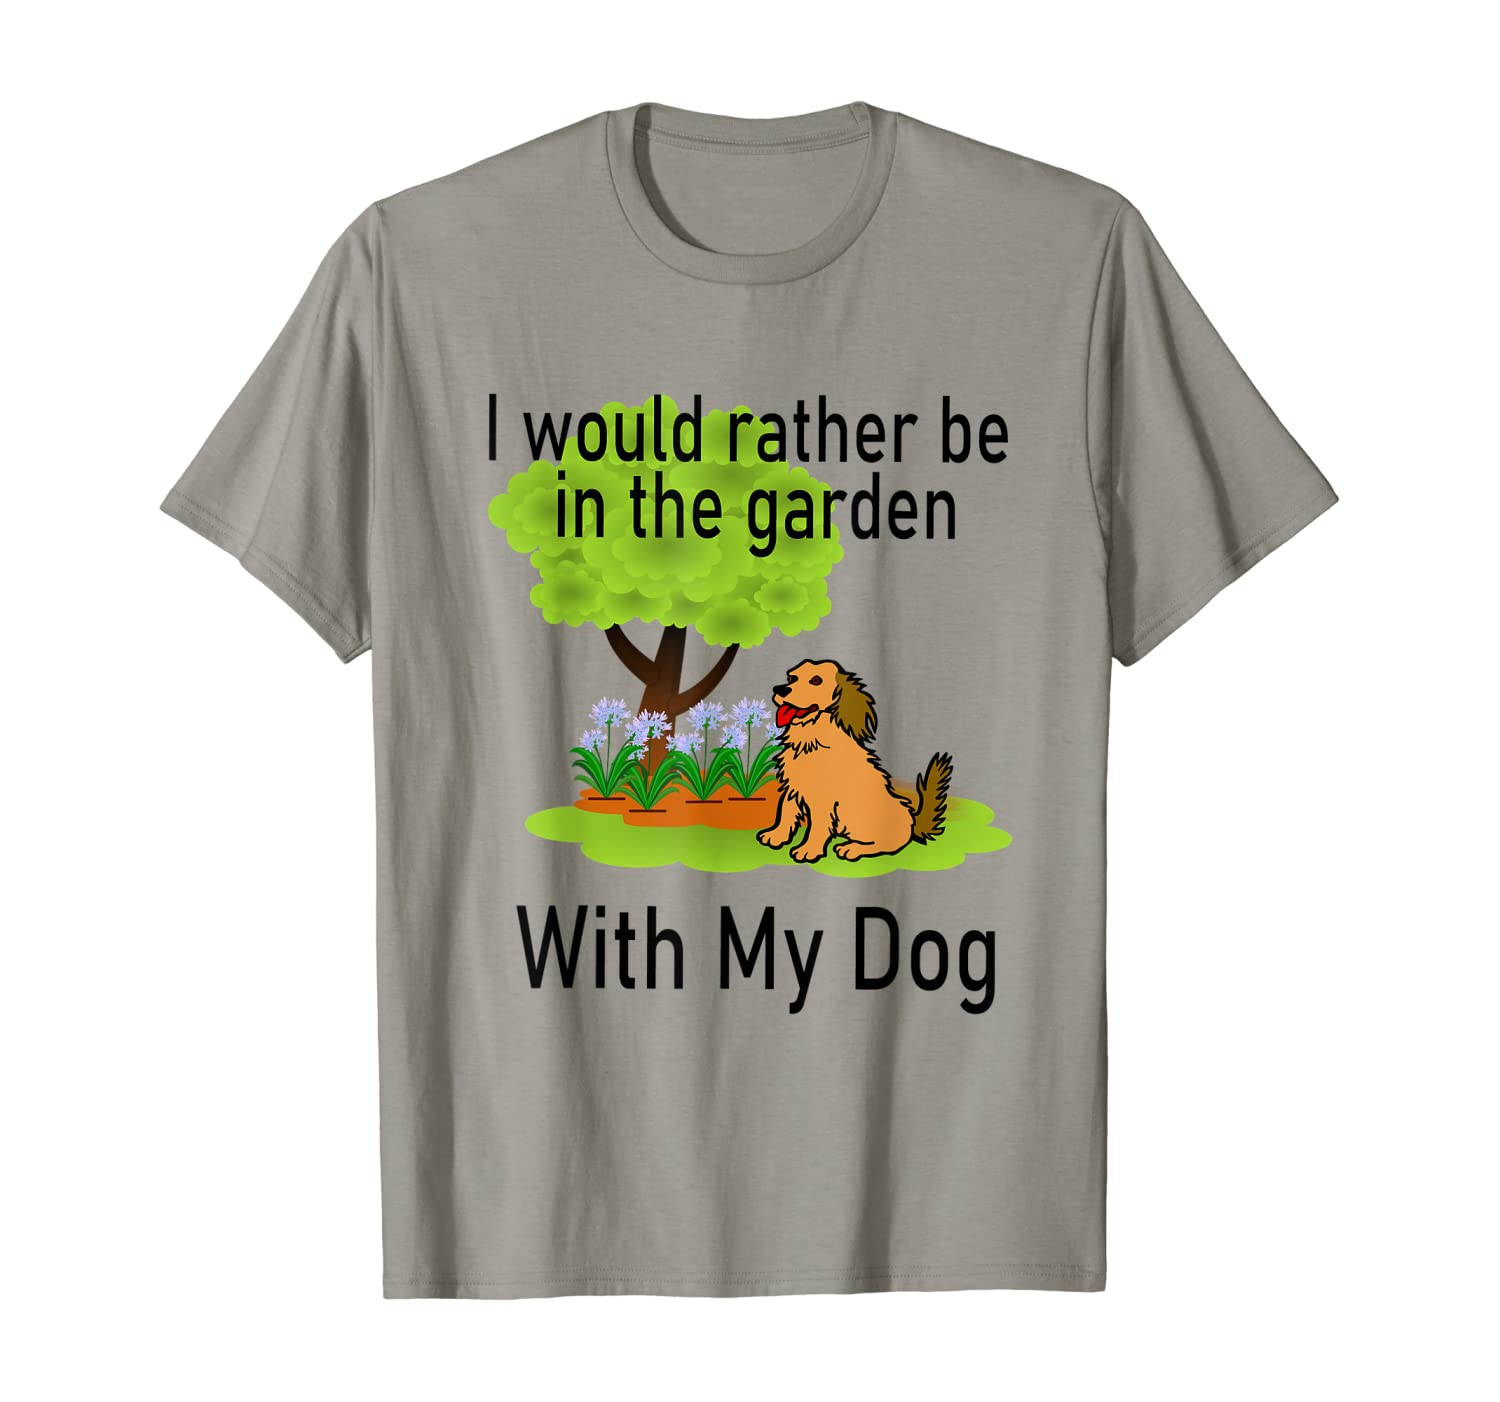 I'd Rather be in the Garden with my Dog! T-Shirt